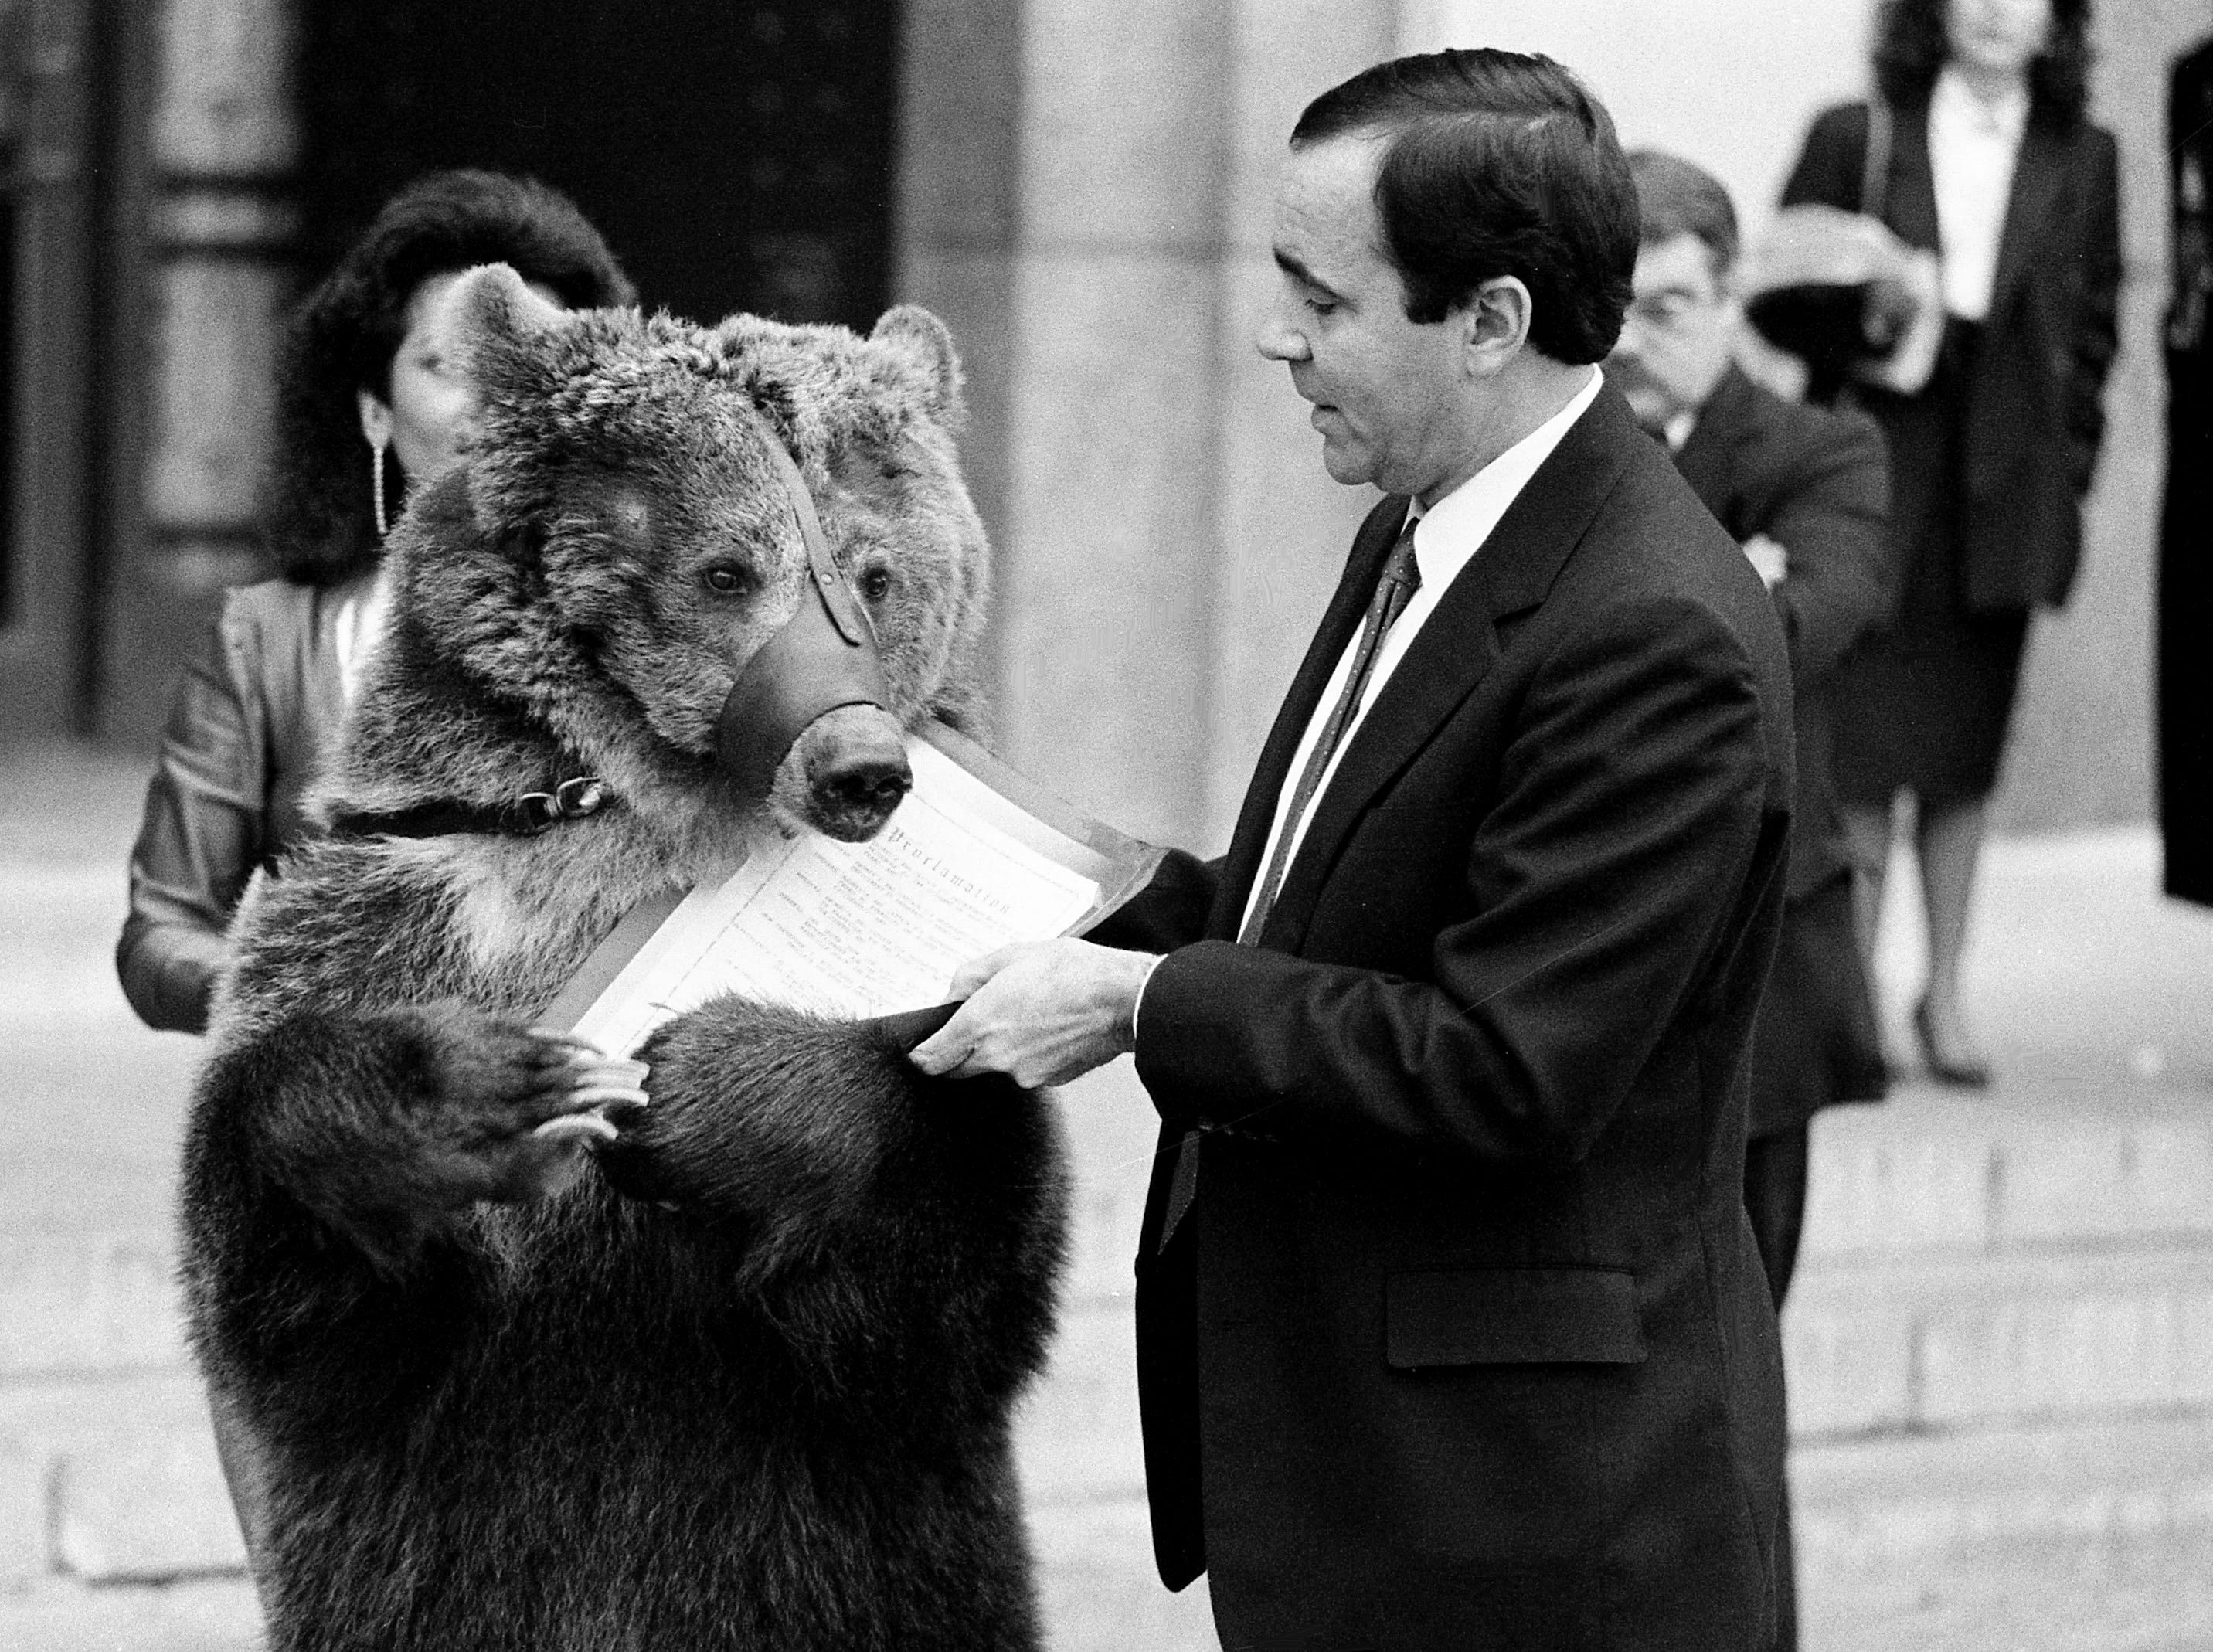 Emma the bear, doing promotional work for the Shoney's Circus, which will perform the coming weekend at Municipal Auditorium, finds the proclamation presented by Metro Mayor Bill Boner in front of the Metro Courthouse a tasty treat Feb. 21, 1989.